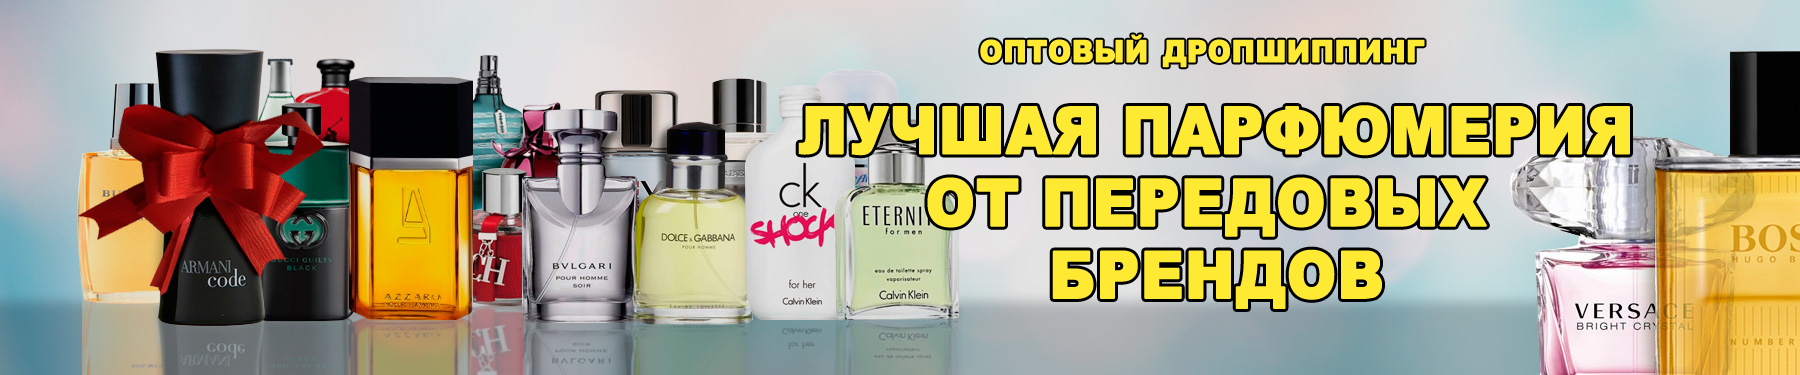 banner-perfumes_opm